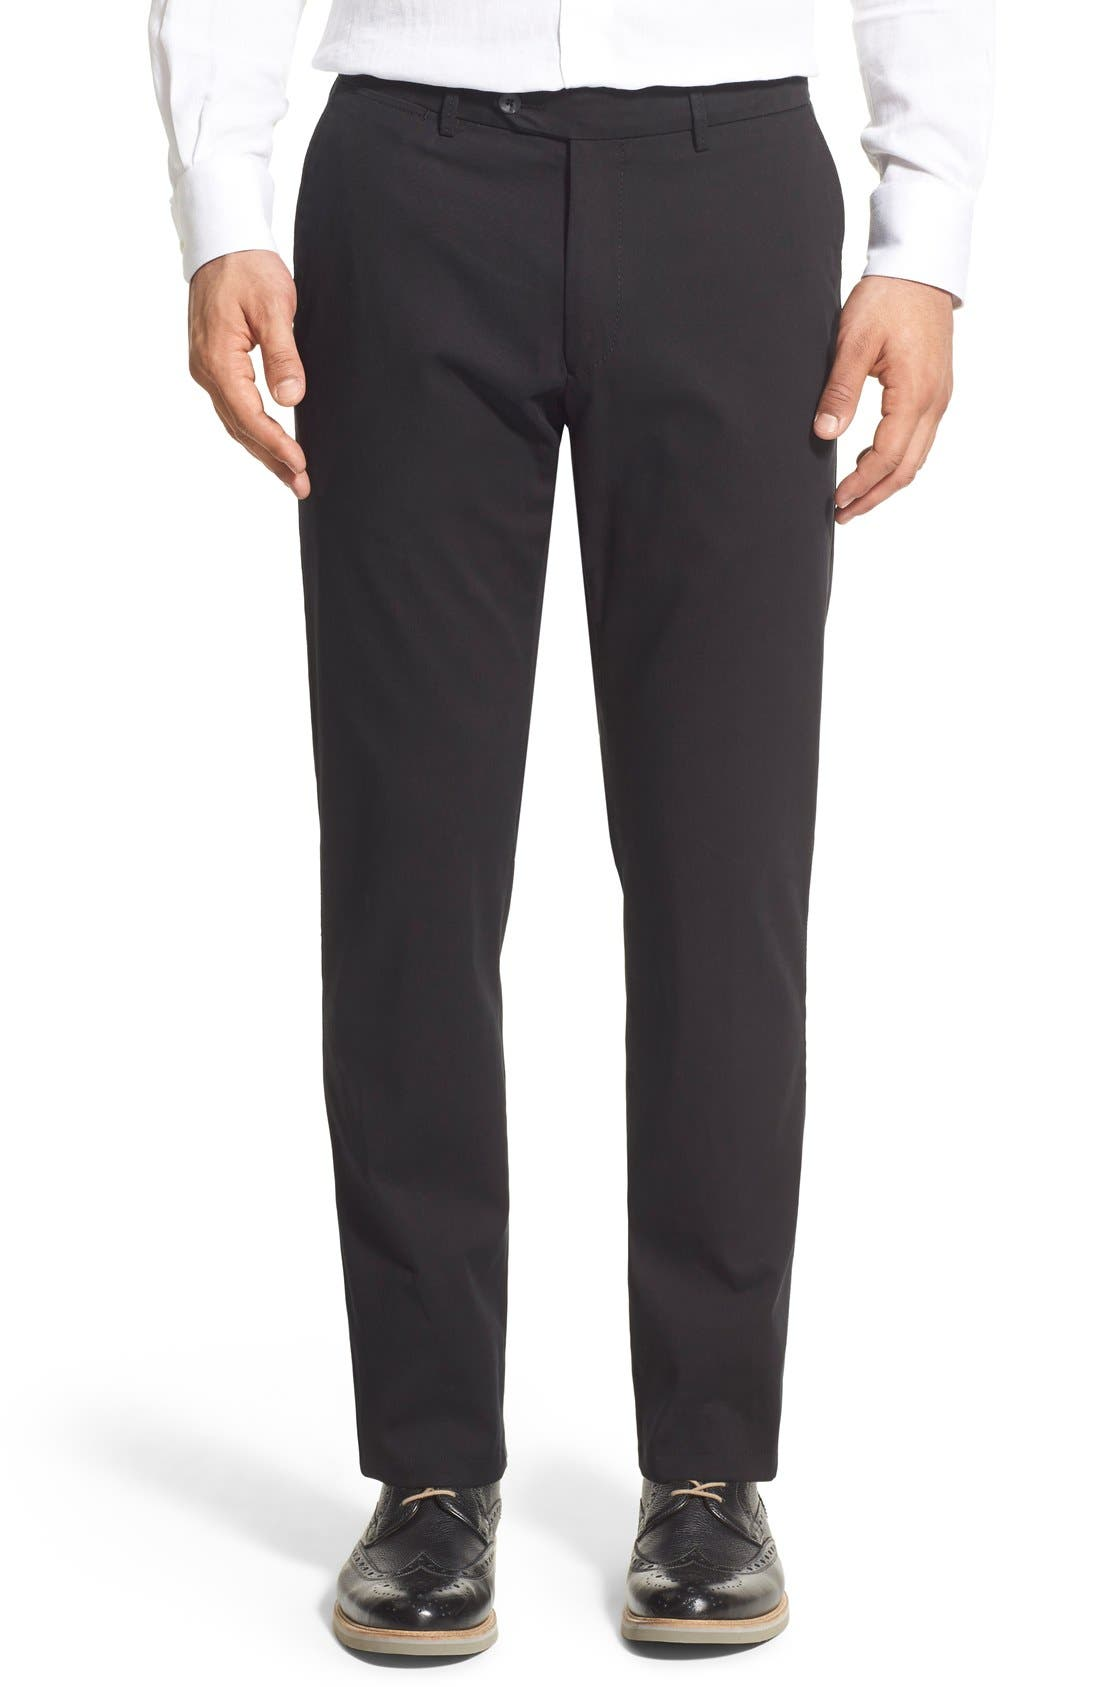 Atwater Cotton Twill Pants,                             Main thumbnail 1, color,                             001